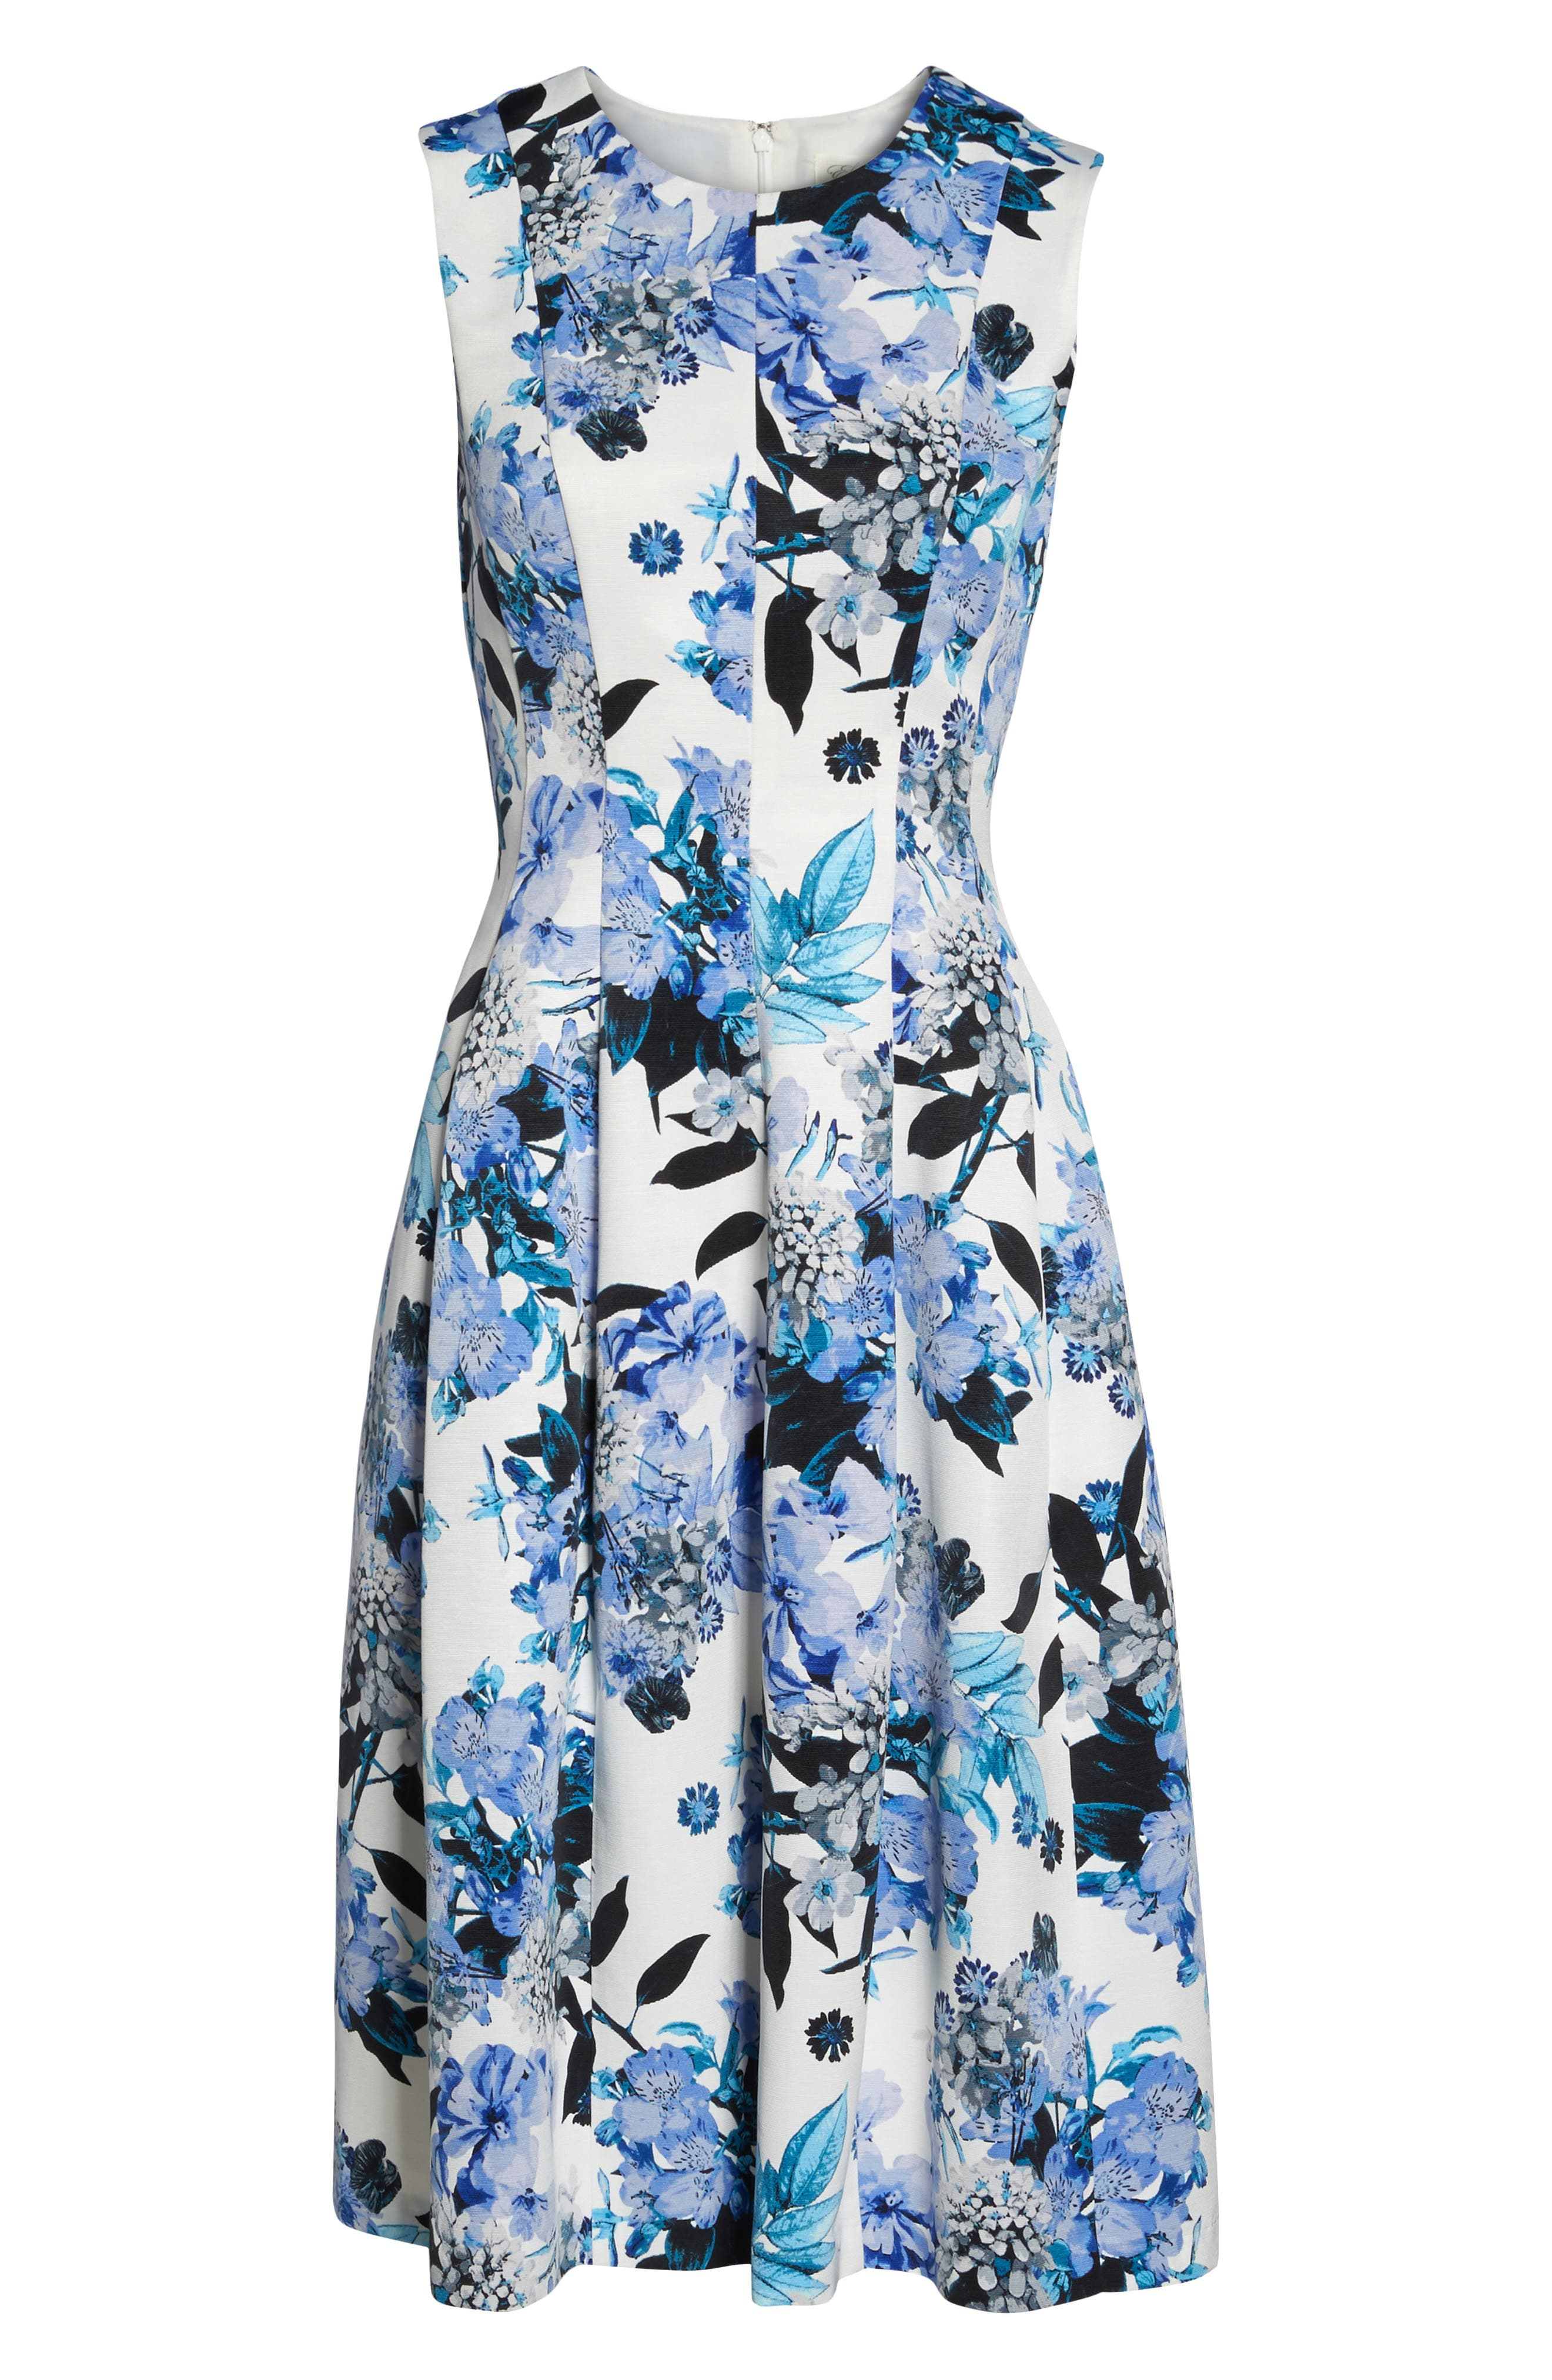 Floral Fit & Flare Dress,                             Alternate thumbnail 6, color,                             421